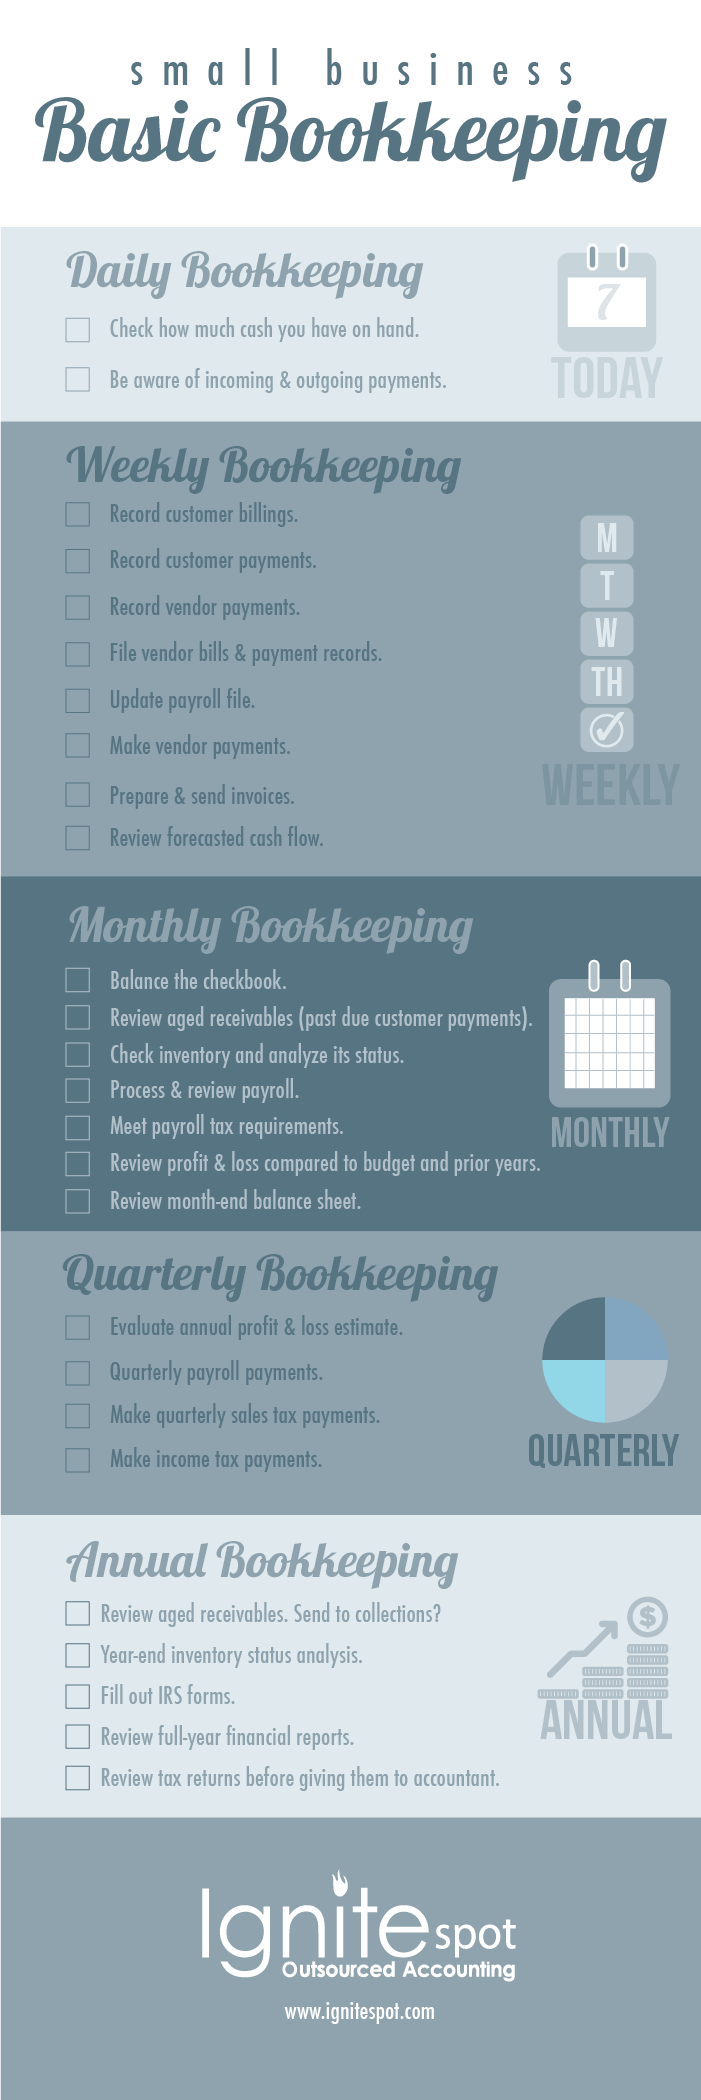 basic_bookkeeping_checklist.png